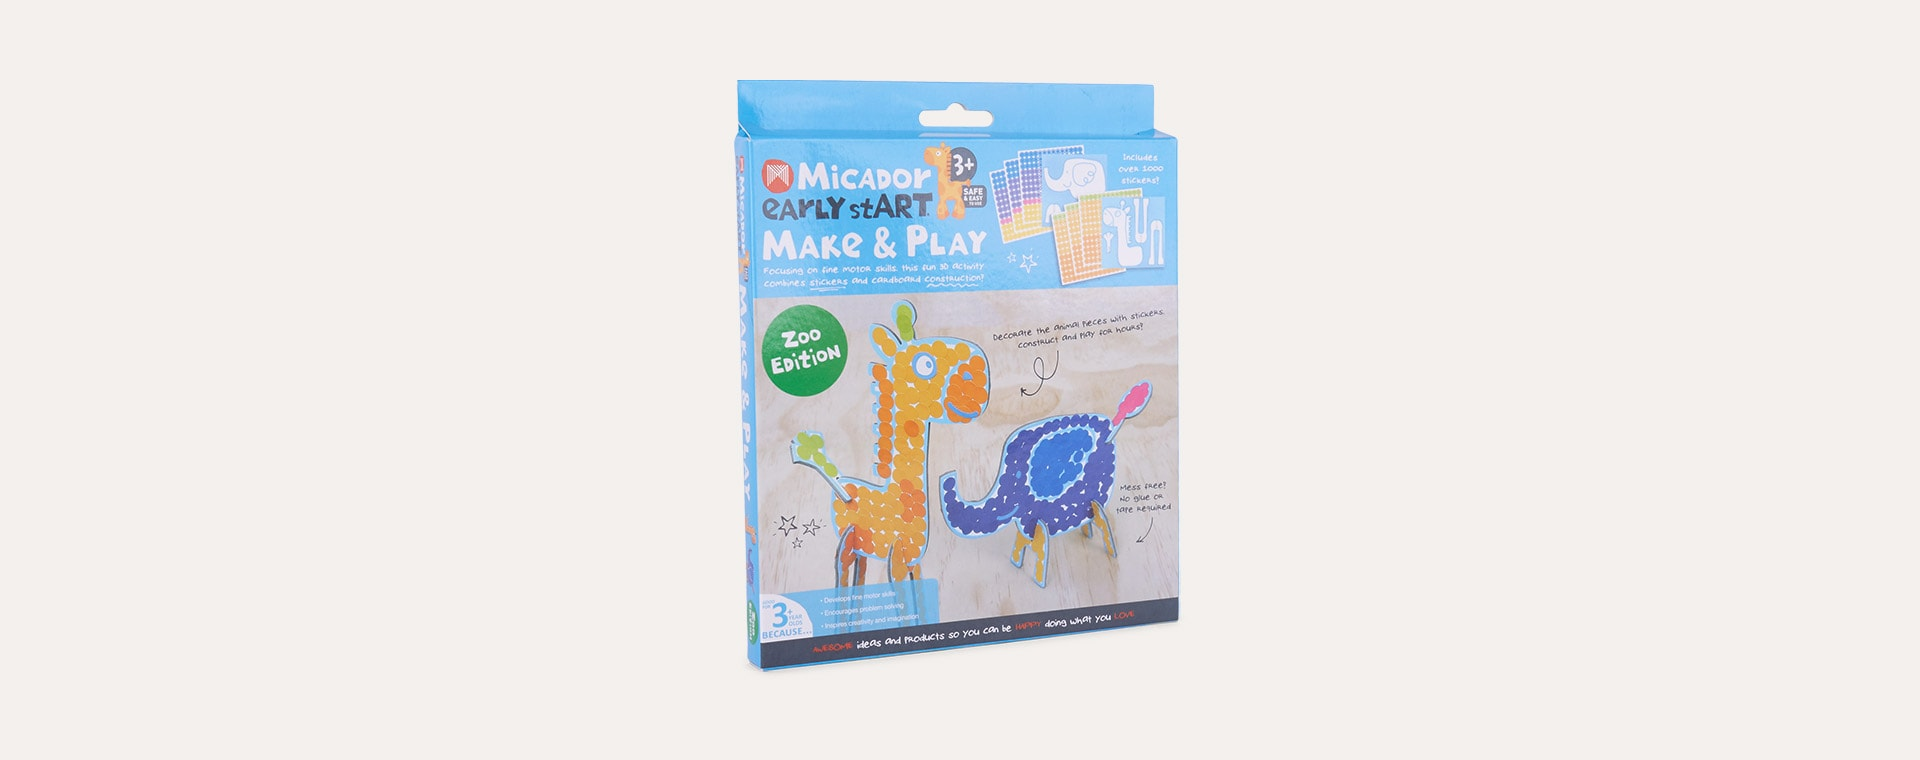 Zoo Edition Micador Early stART Make & Play